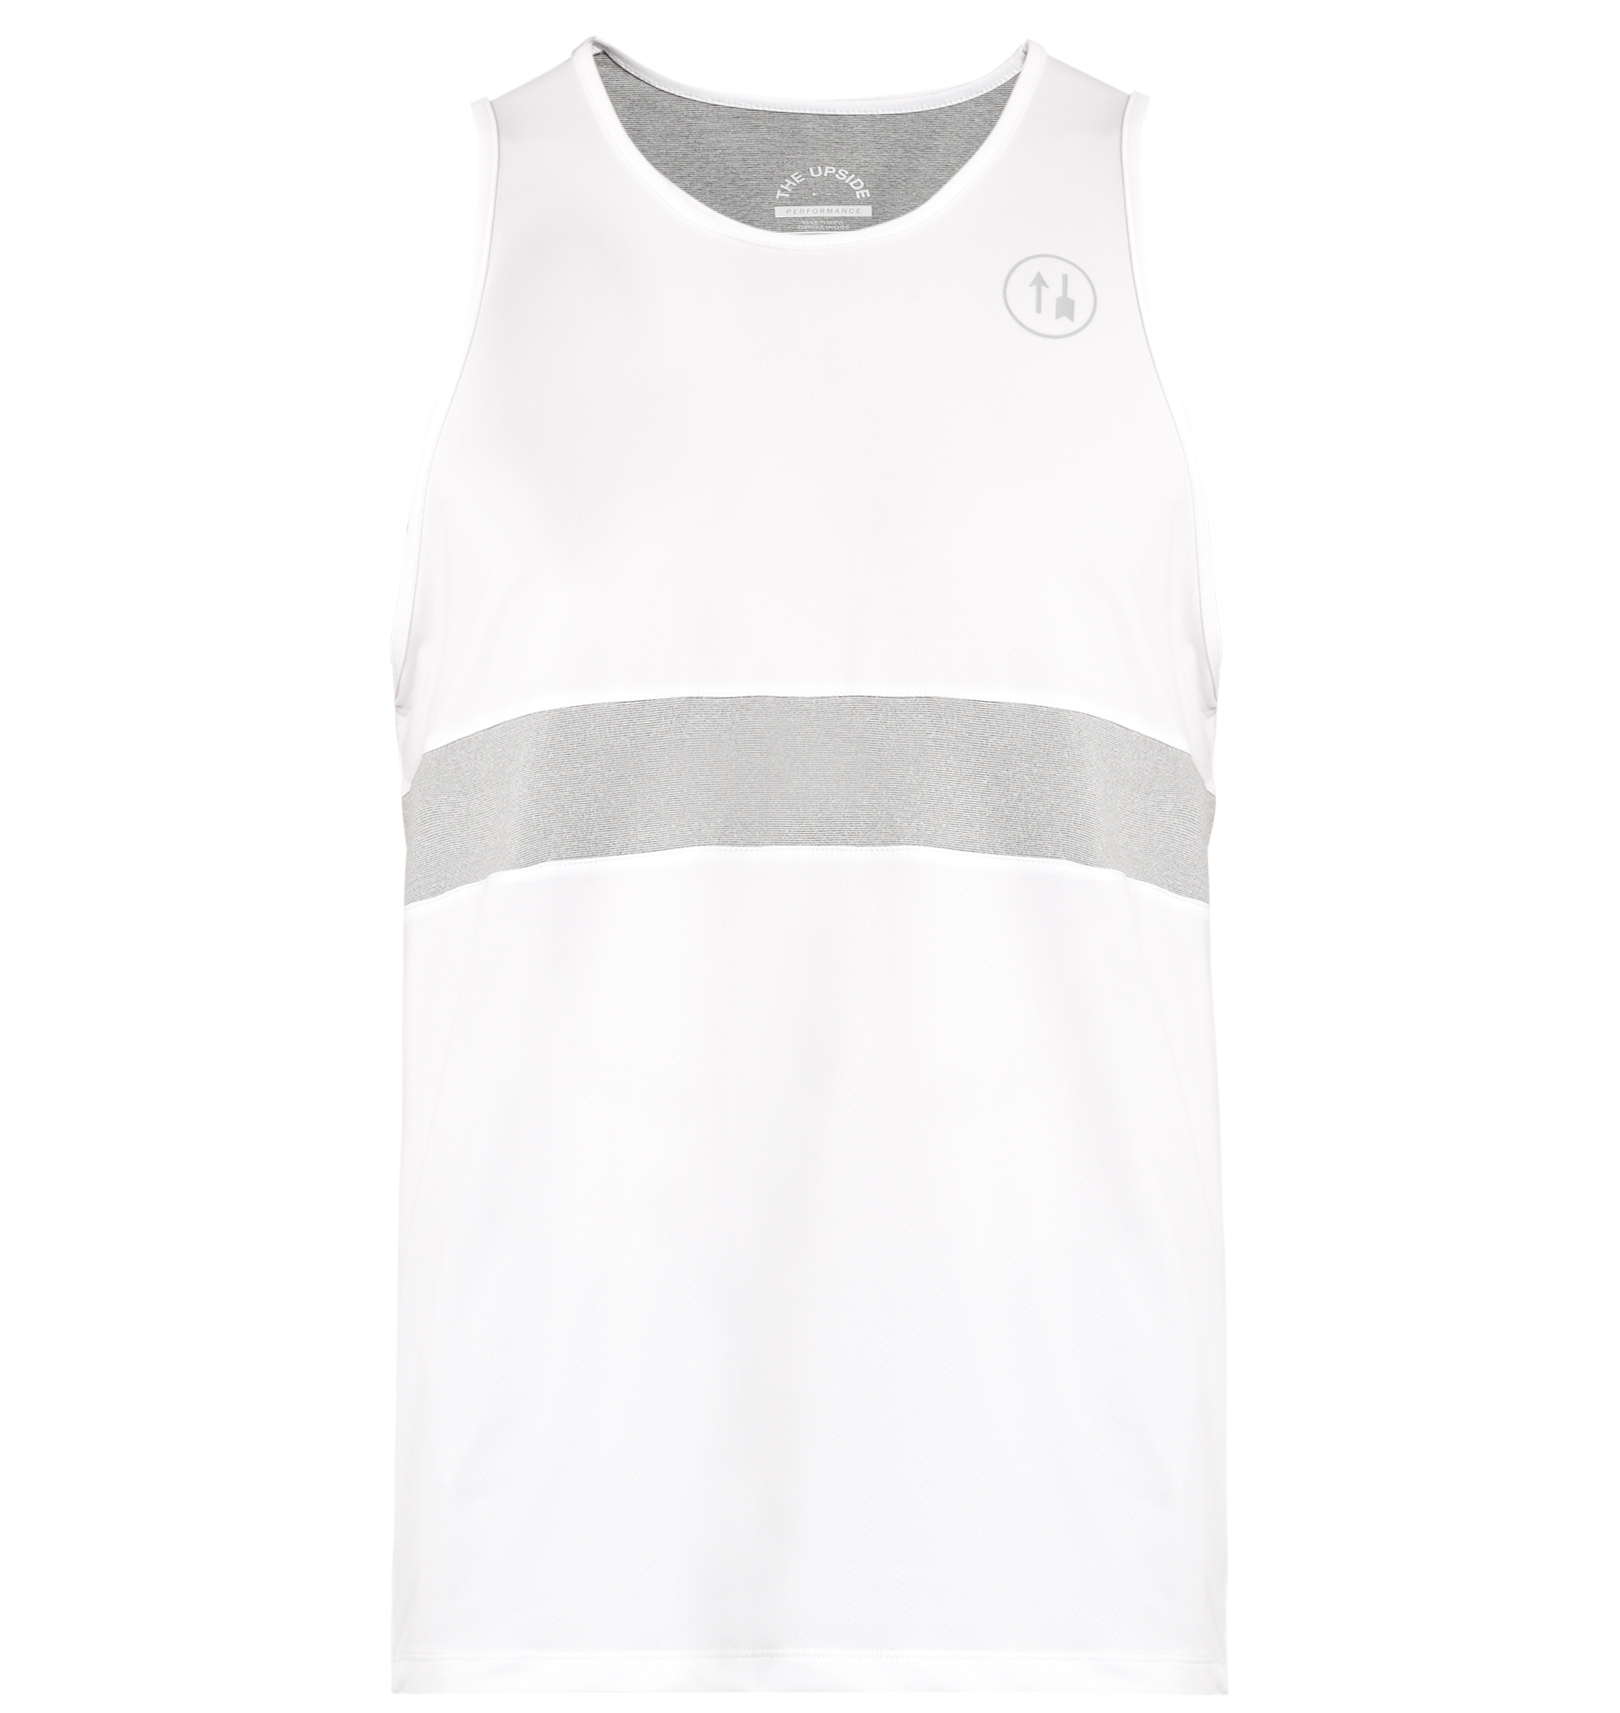 THE UPSIDE Stannas performance tank top -  £62.00